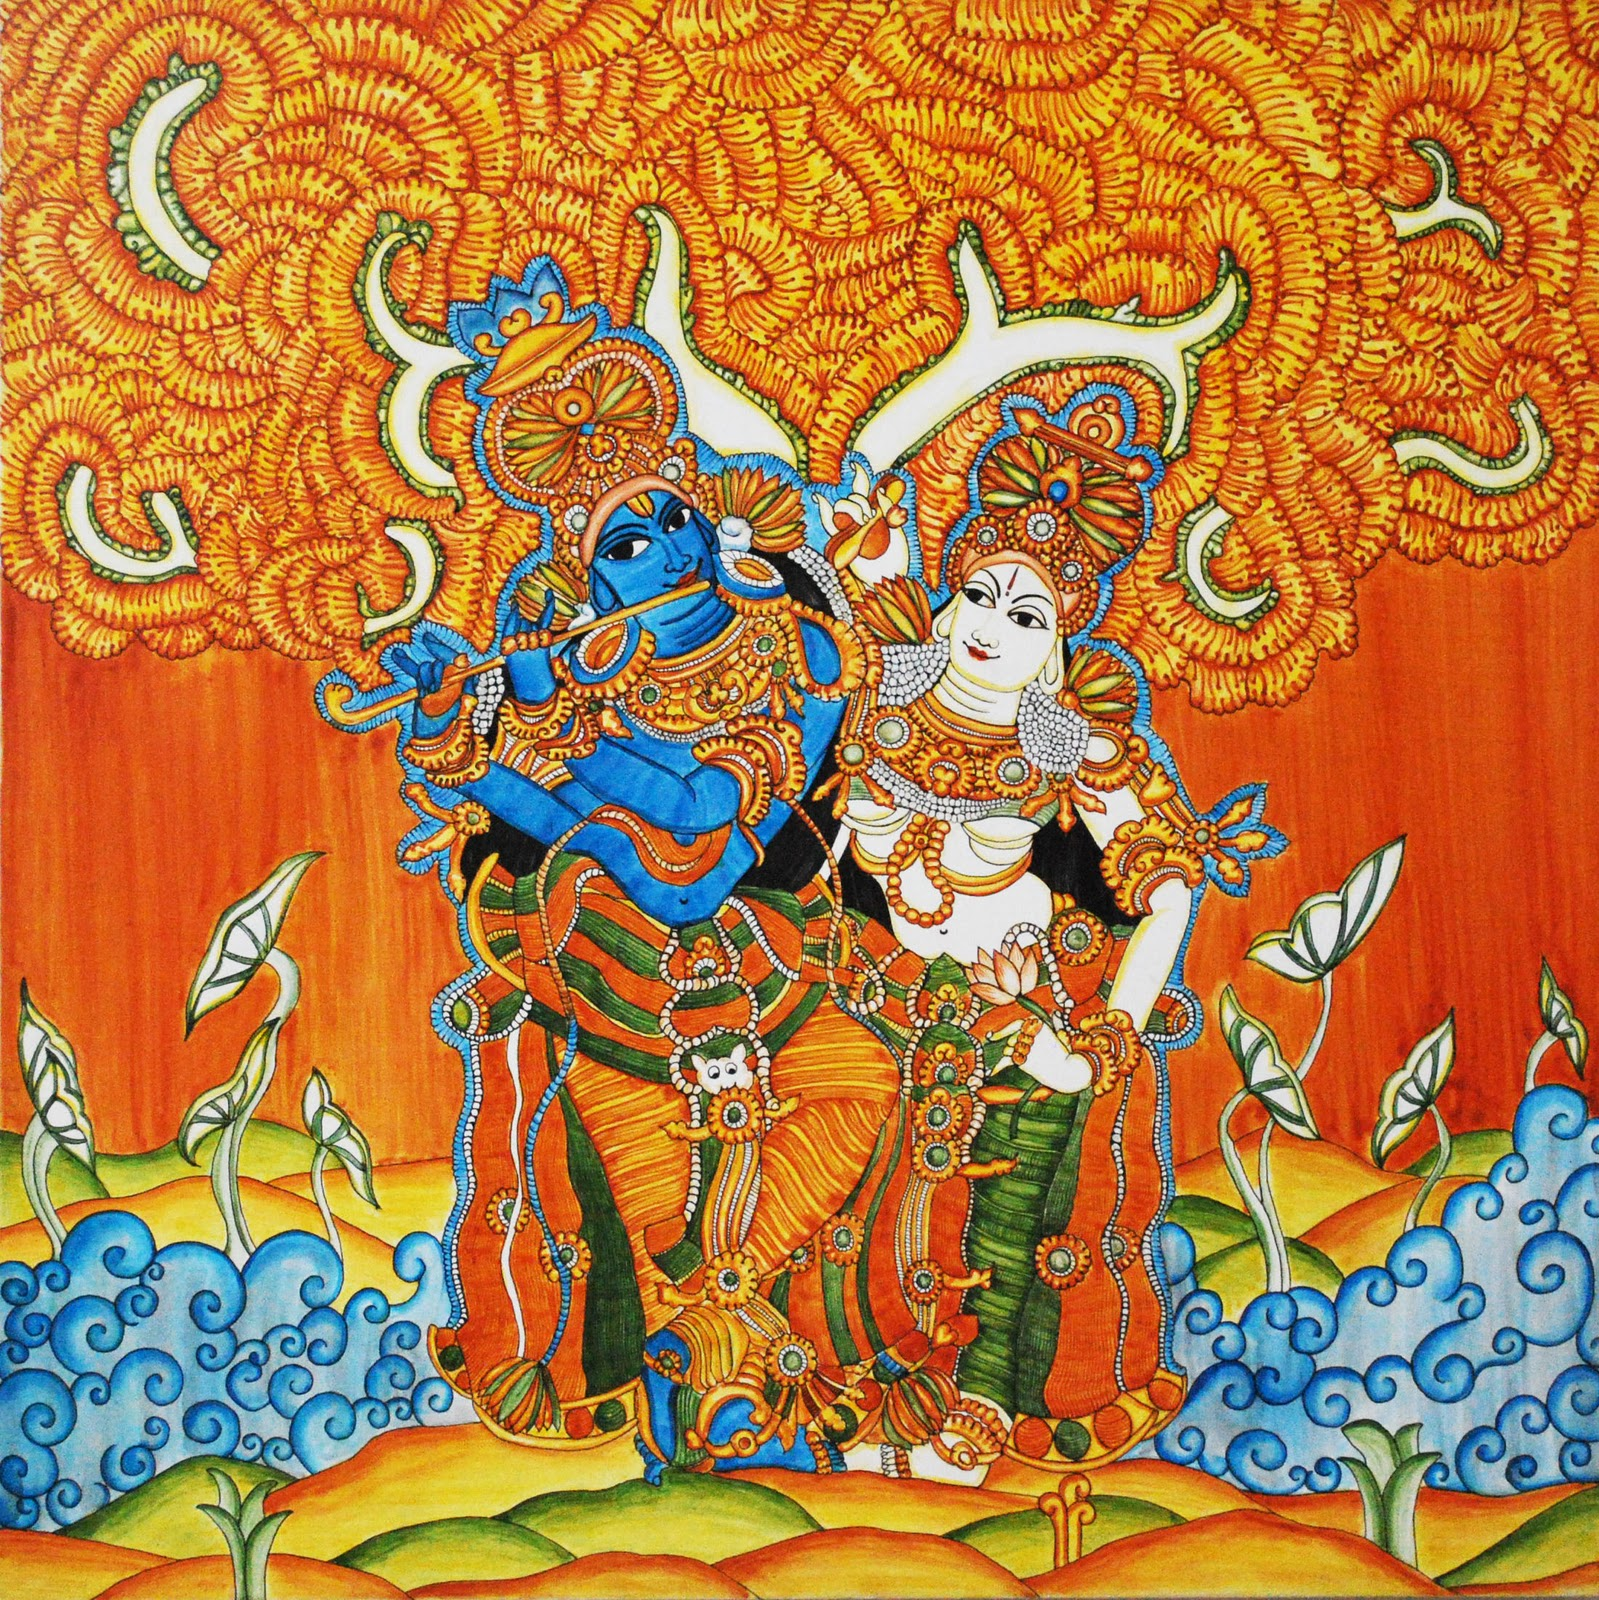 My blue room kerala mural painting radha krishna for Mural radha krishna